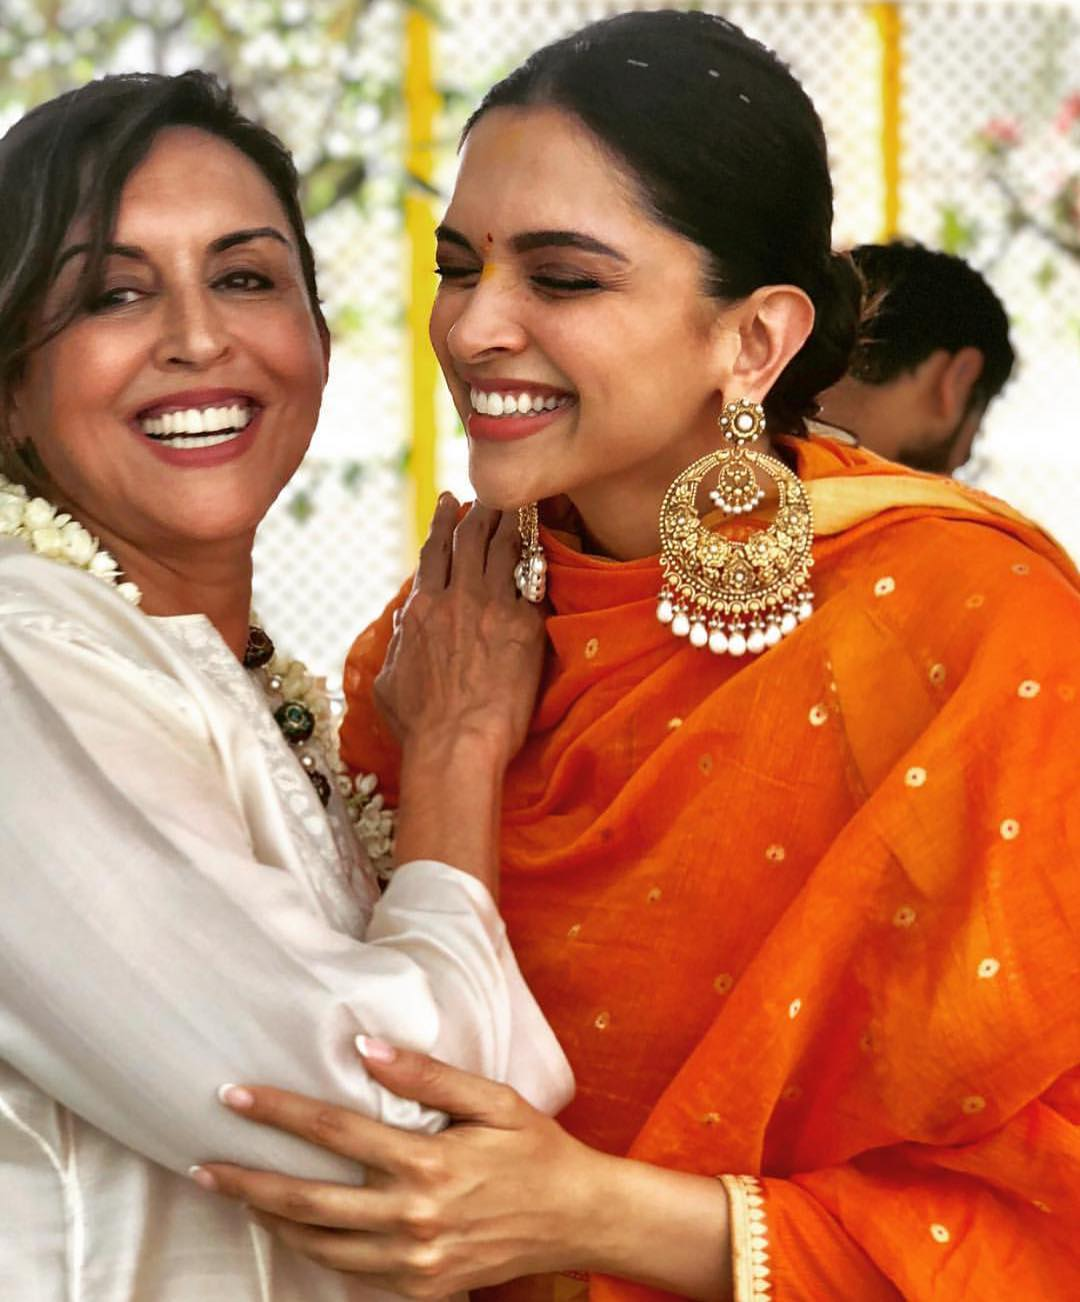 deepika-padukone-at-pre-wedding-puja-in-sabyasachi